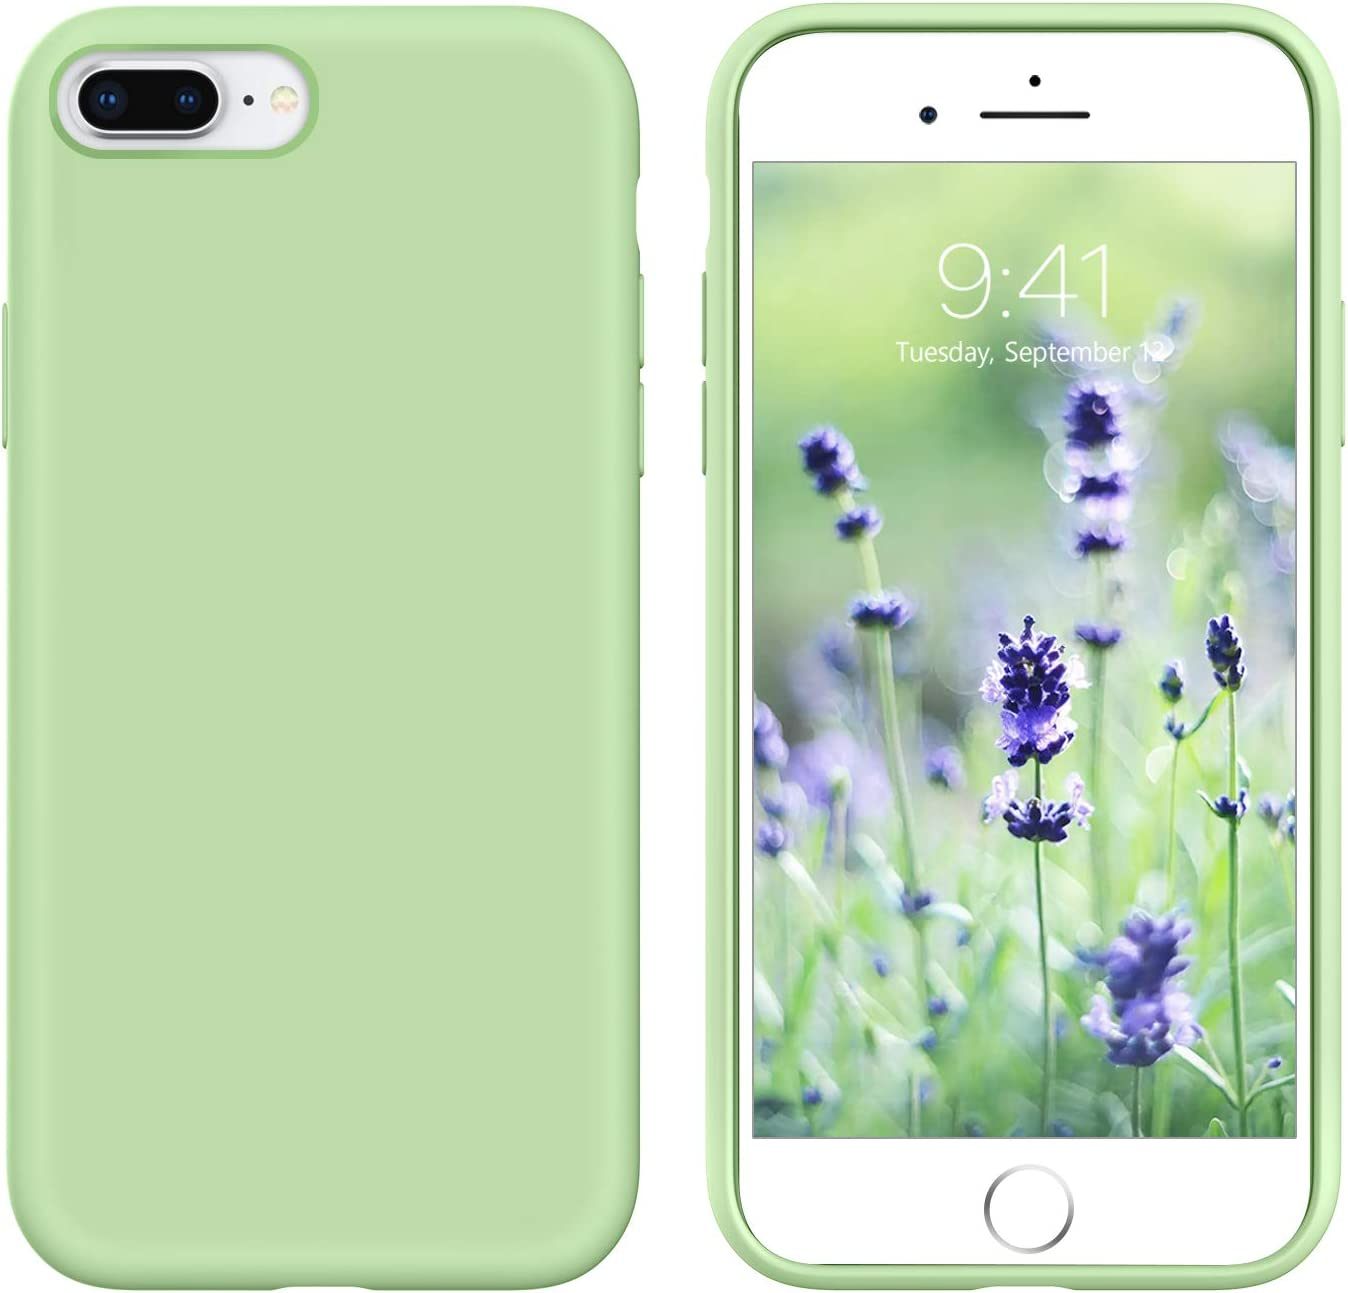 GUAGUA iPhone 8 Plus Case iPhone 7 Plus Case Liquid Silicone Soft Gel Rubber Slim Lightweight Microfiber Lining Cushion Texture Cover Shockproof Protective Cases for iPhone 8 Plus /7 Plus Matcha Green